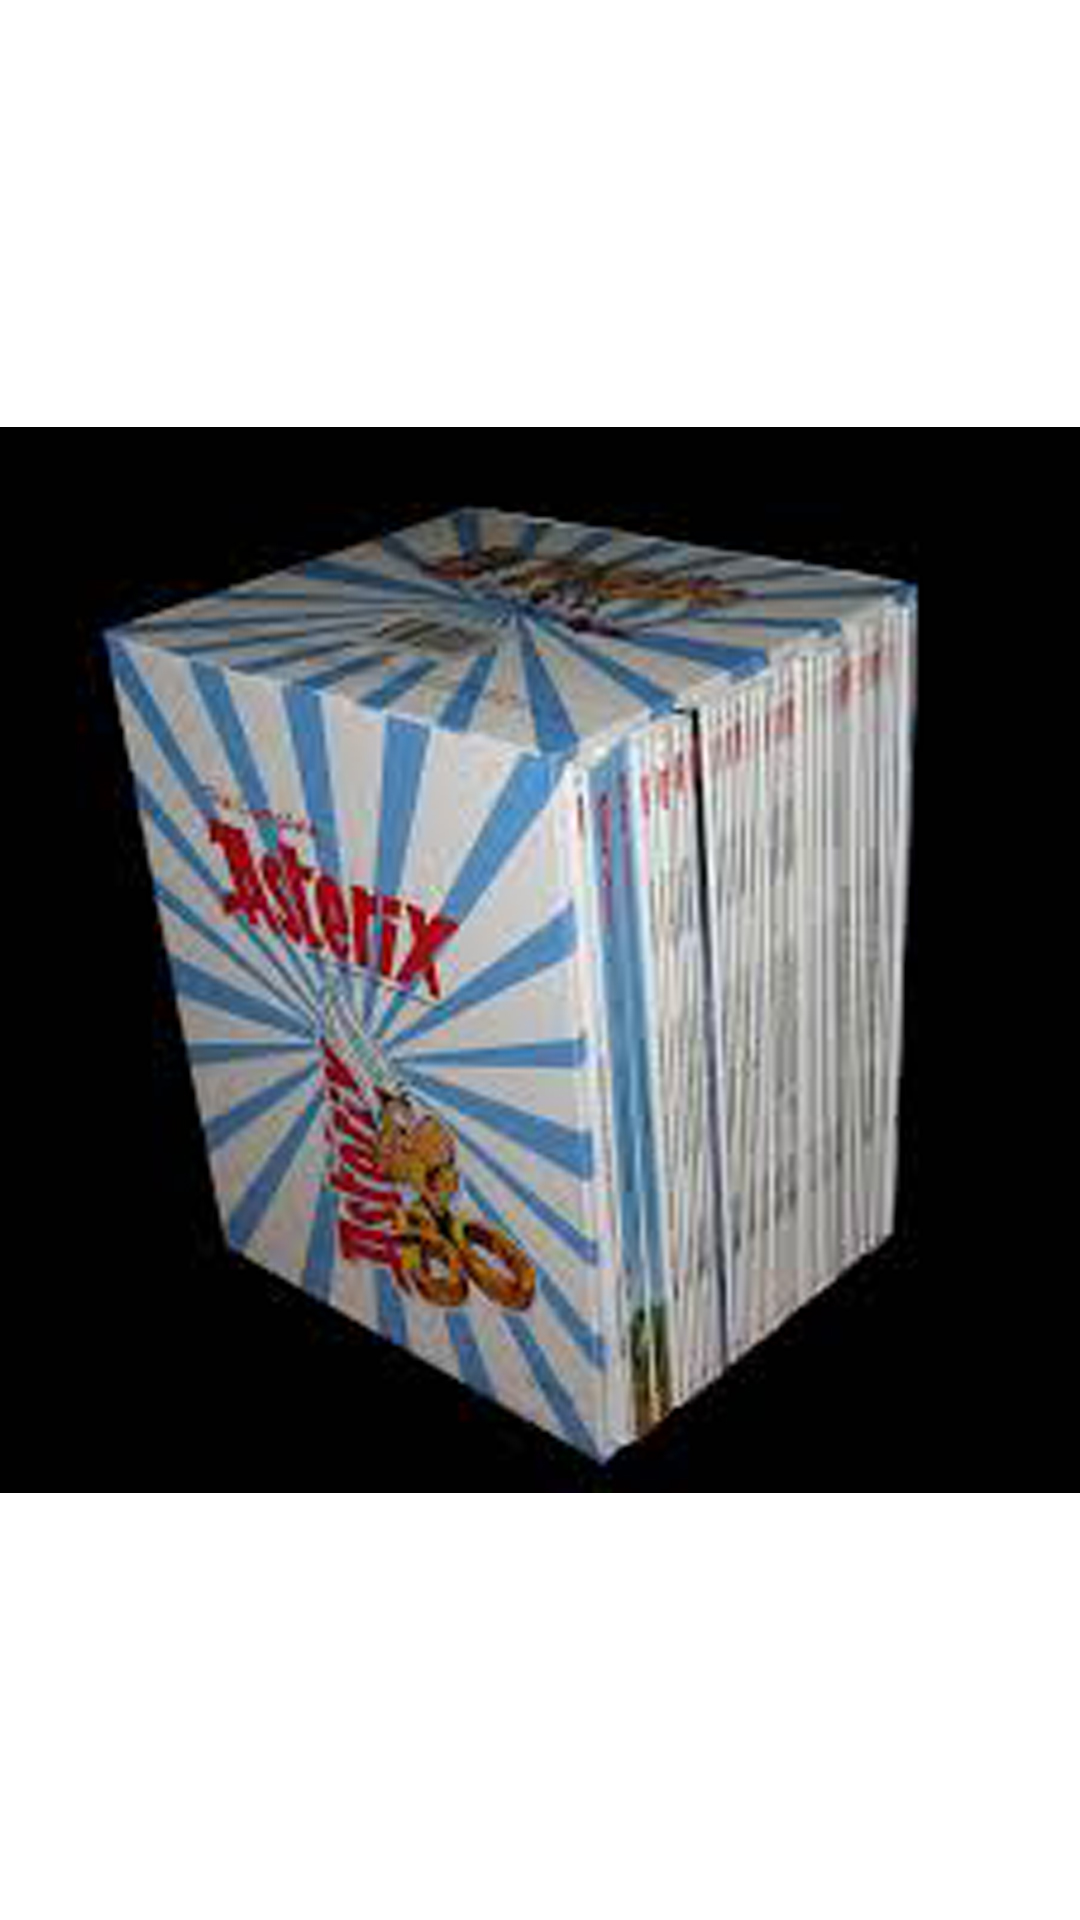 asterix complete collection box set of 34 titles available at paytm for. Black Bedroom Furniture Sets. Home Design Ideas